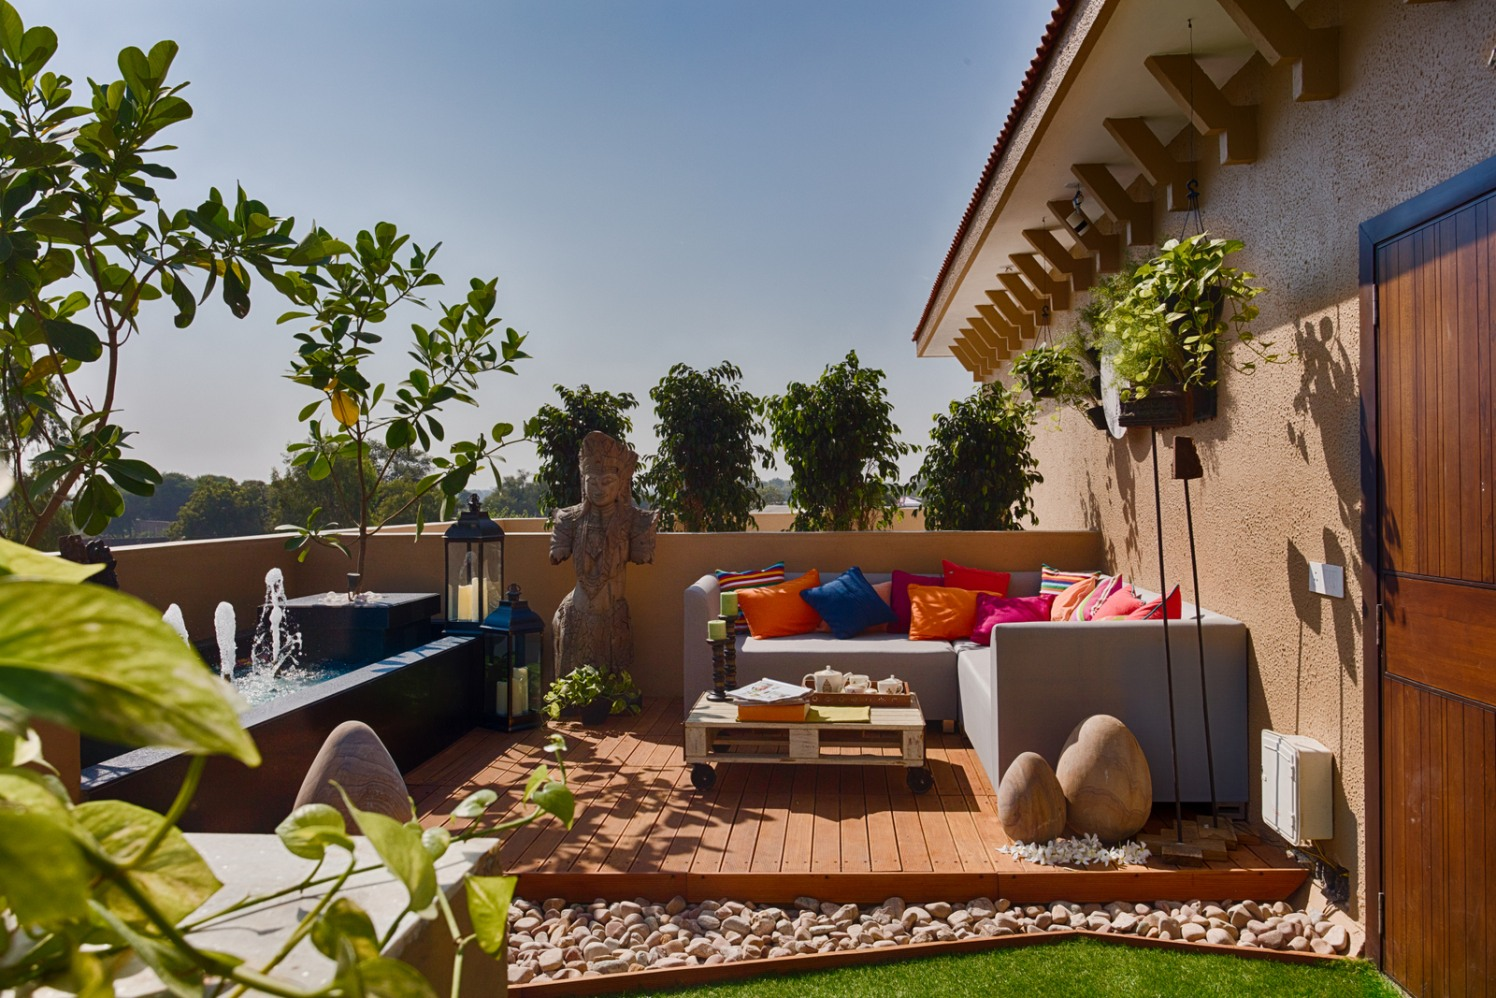 Roof Top Decor And with Ample of House Plants and Colorful Decors by Dhaval Patel Open-spaces Contemporary | Interior Design Photos & Ideas